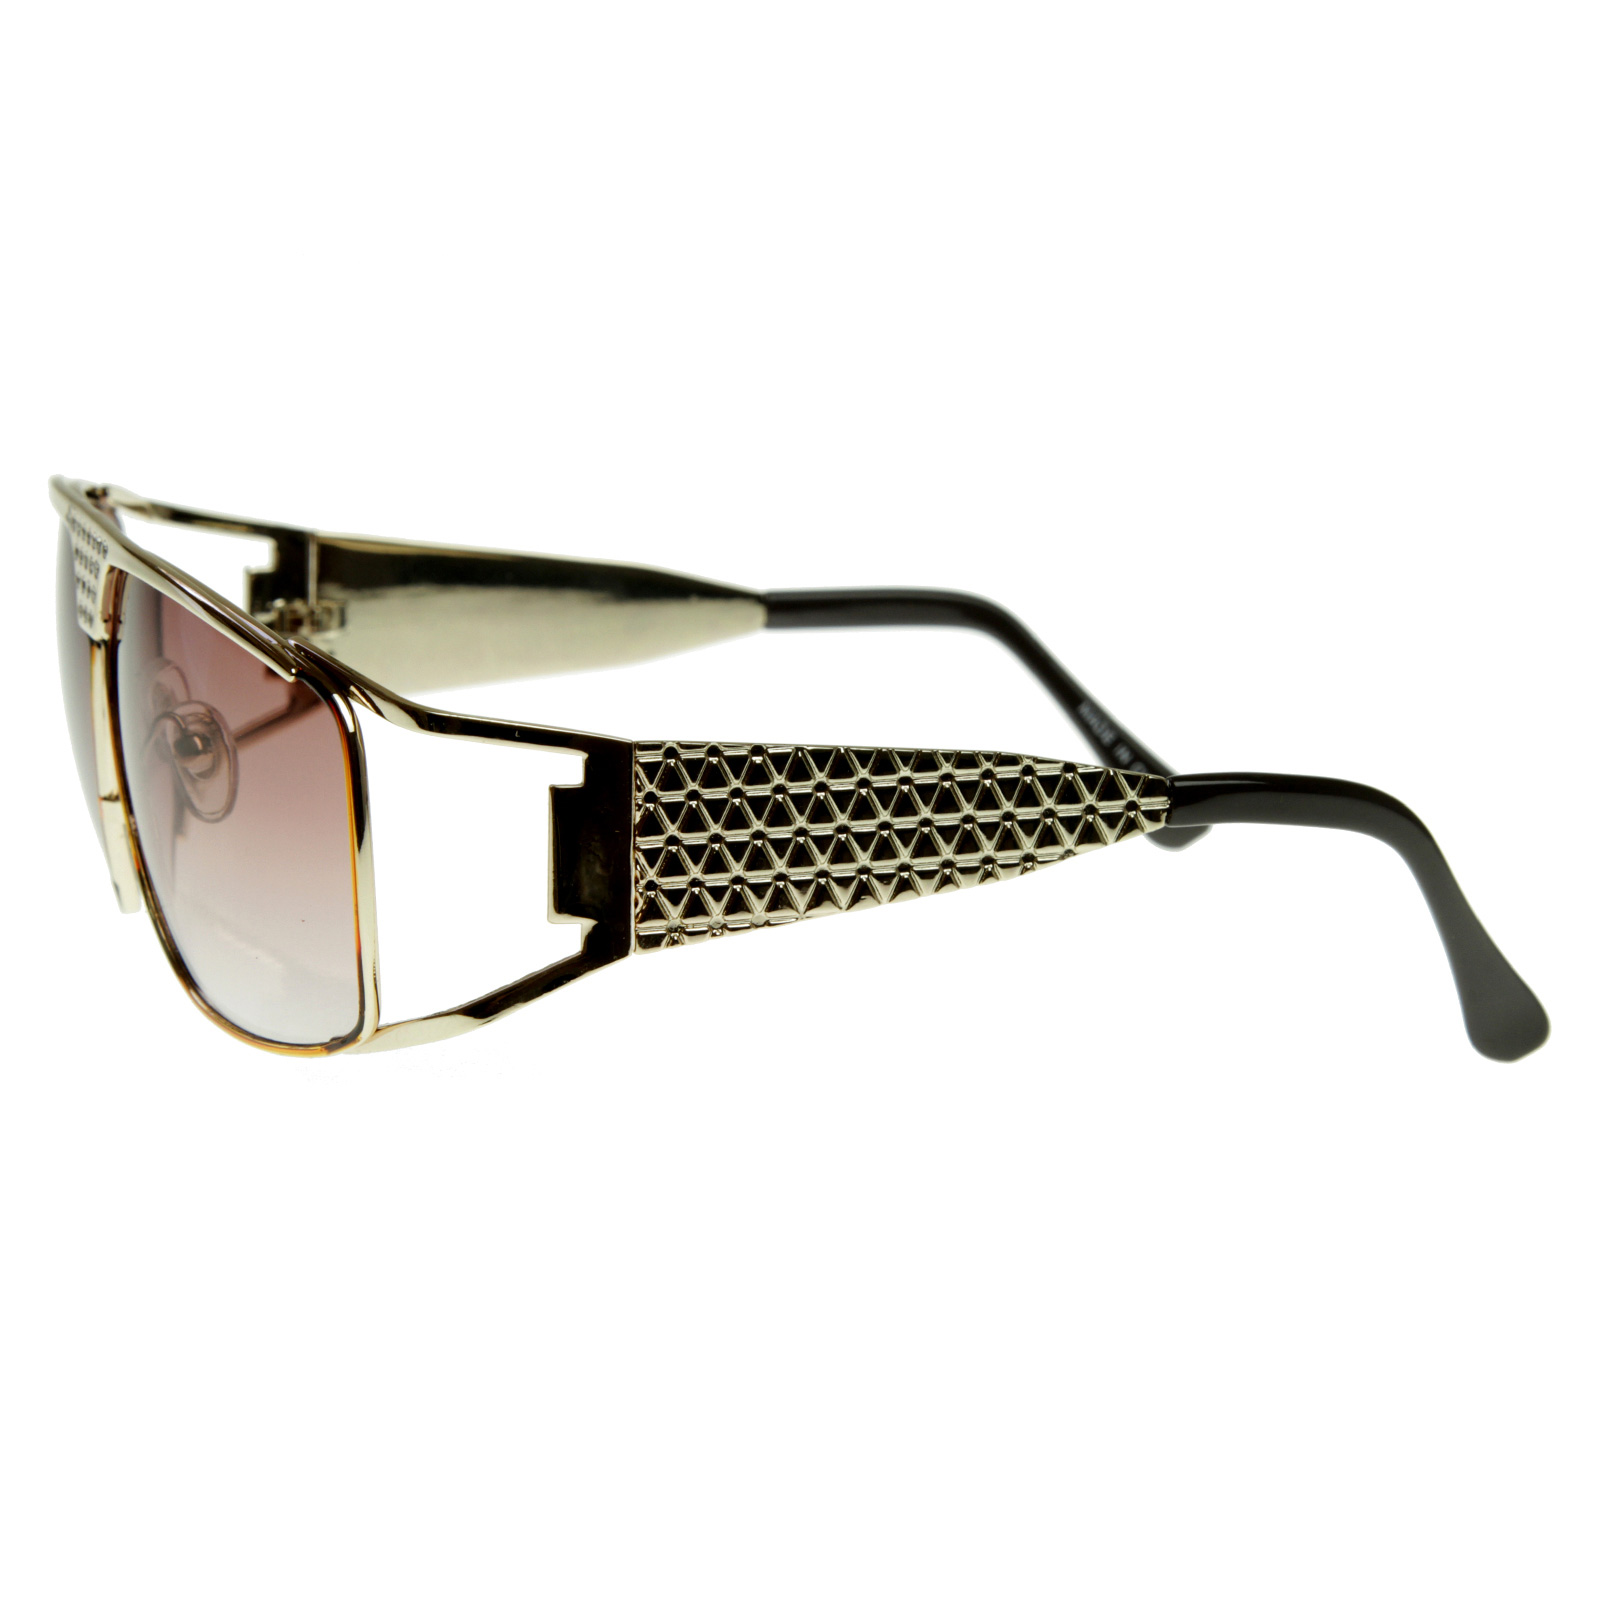 Designer Glasses Frames Las Vegas : Large Metal Elvis Style Glasses Sunglasses w/ Rhinestones ...